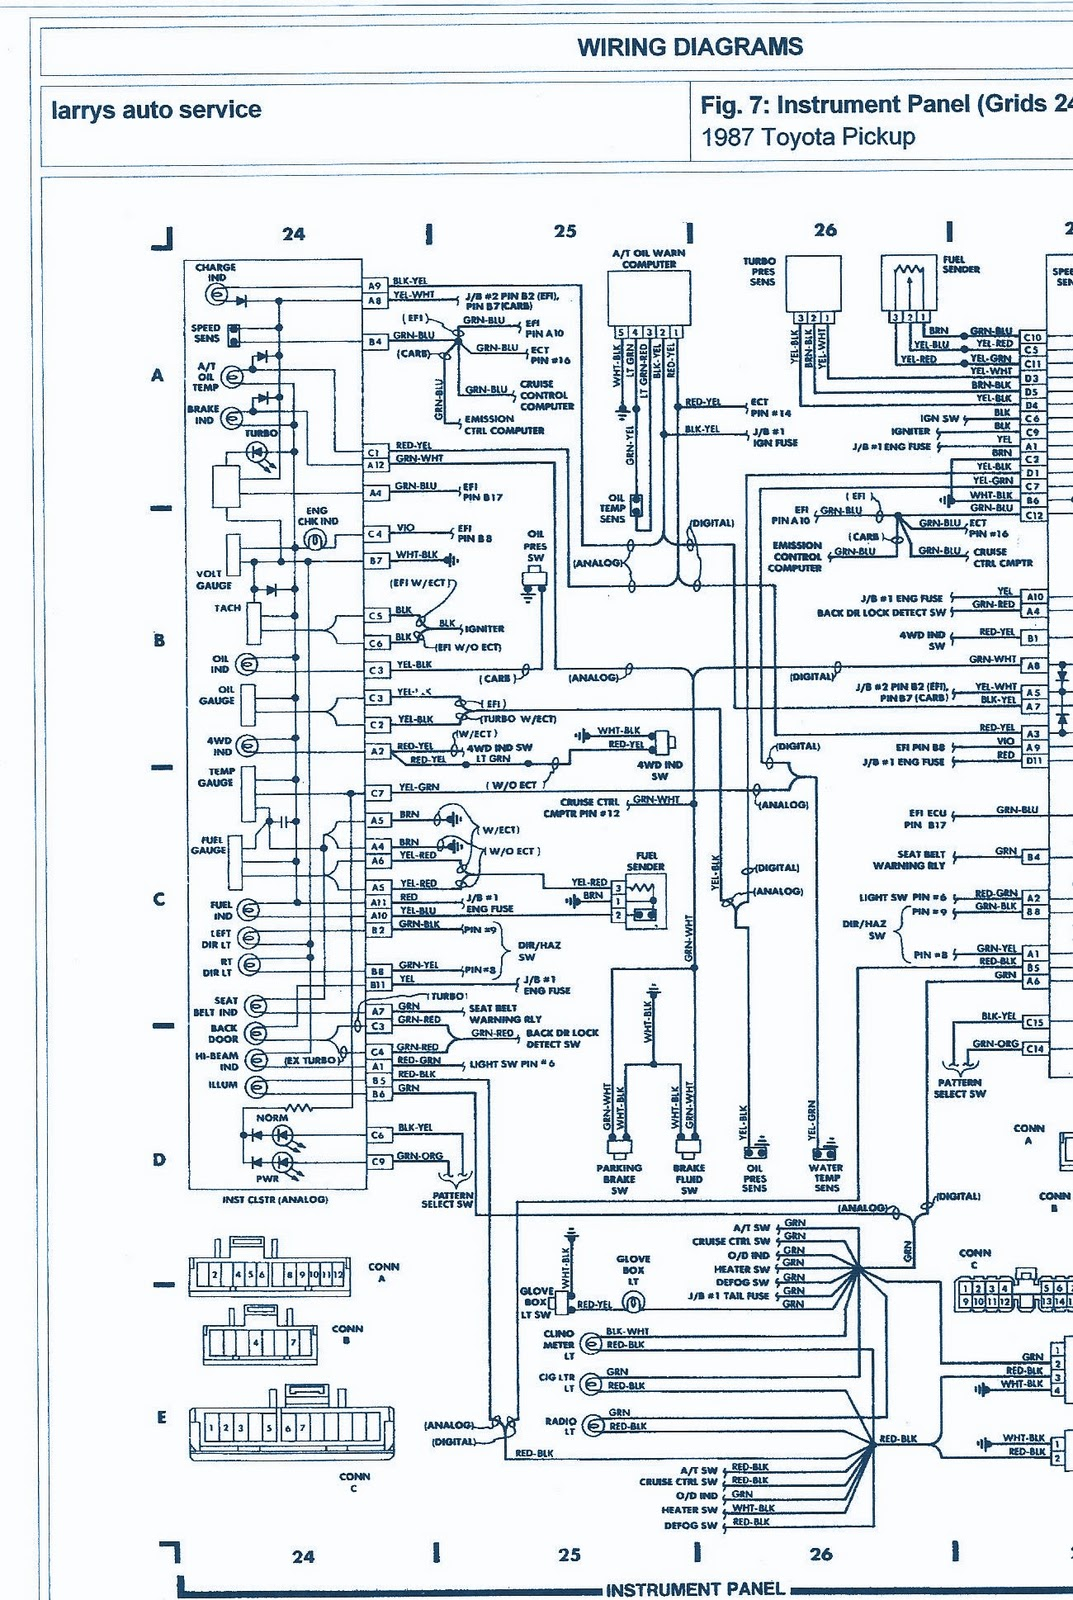 260z Fuse Diagram Explained Wiring Diagrams 1974 Datsun 620 Trusted 2007 Ford Edge Panel